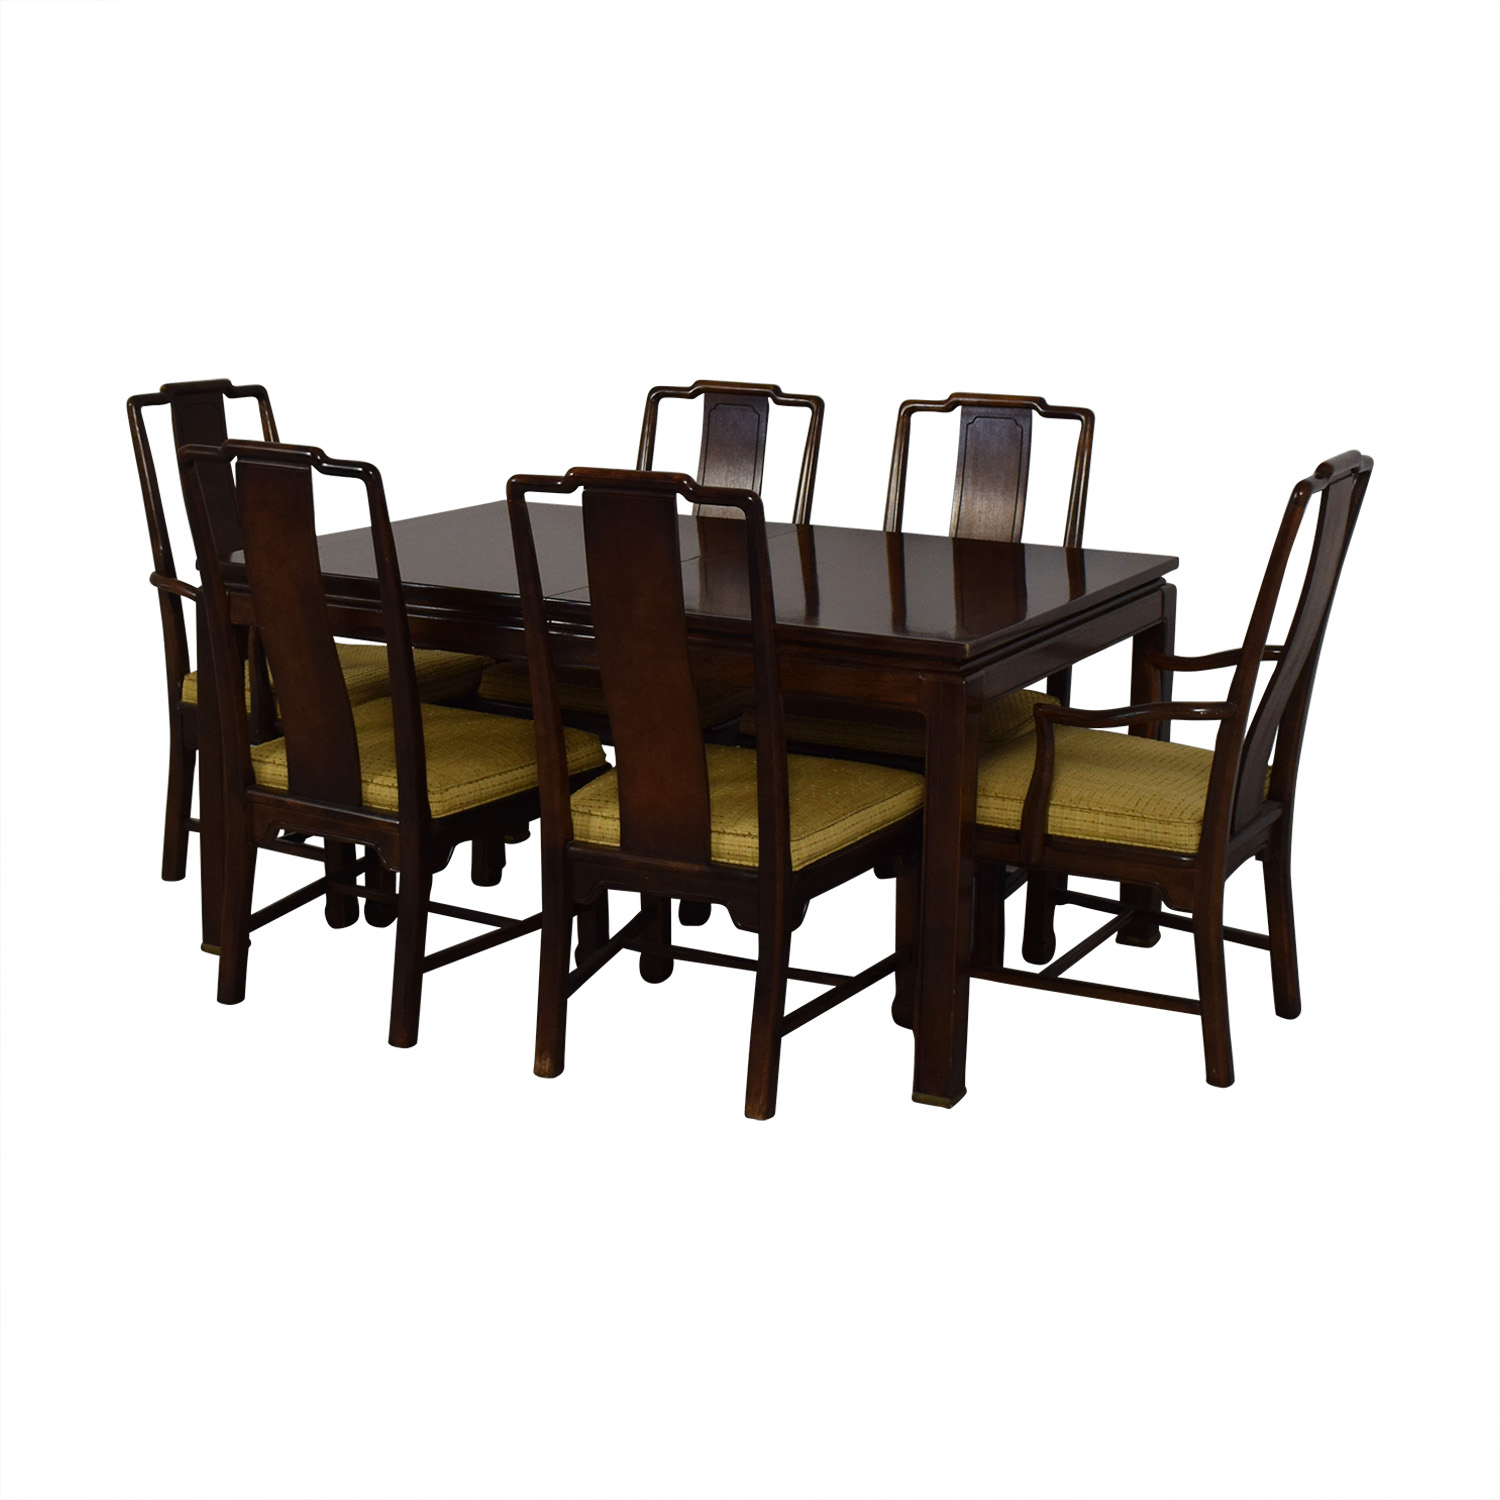 American of Martinsville American Of Martinsville Dining Room Table And Chairs Dining Sets